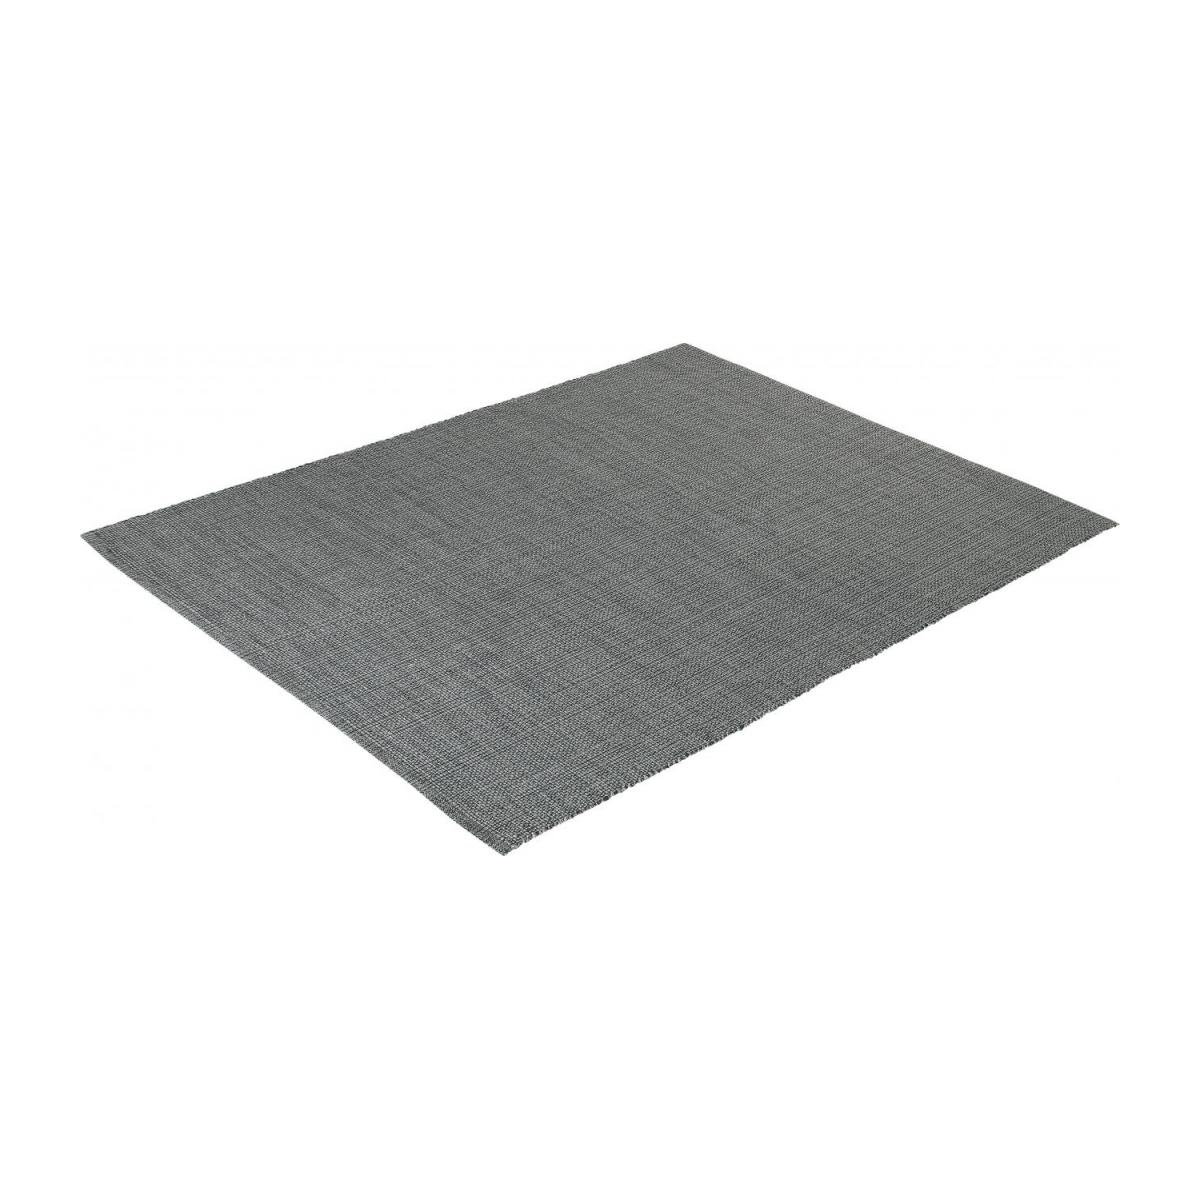 Flat hand-tufted cotton rug 120 x 180 n°2